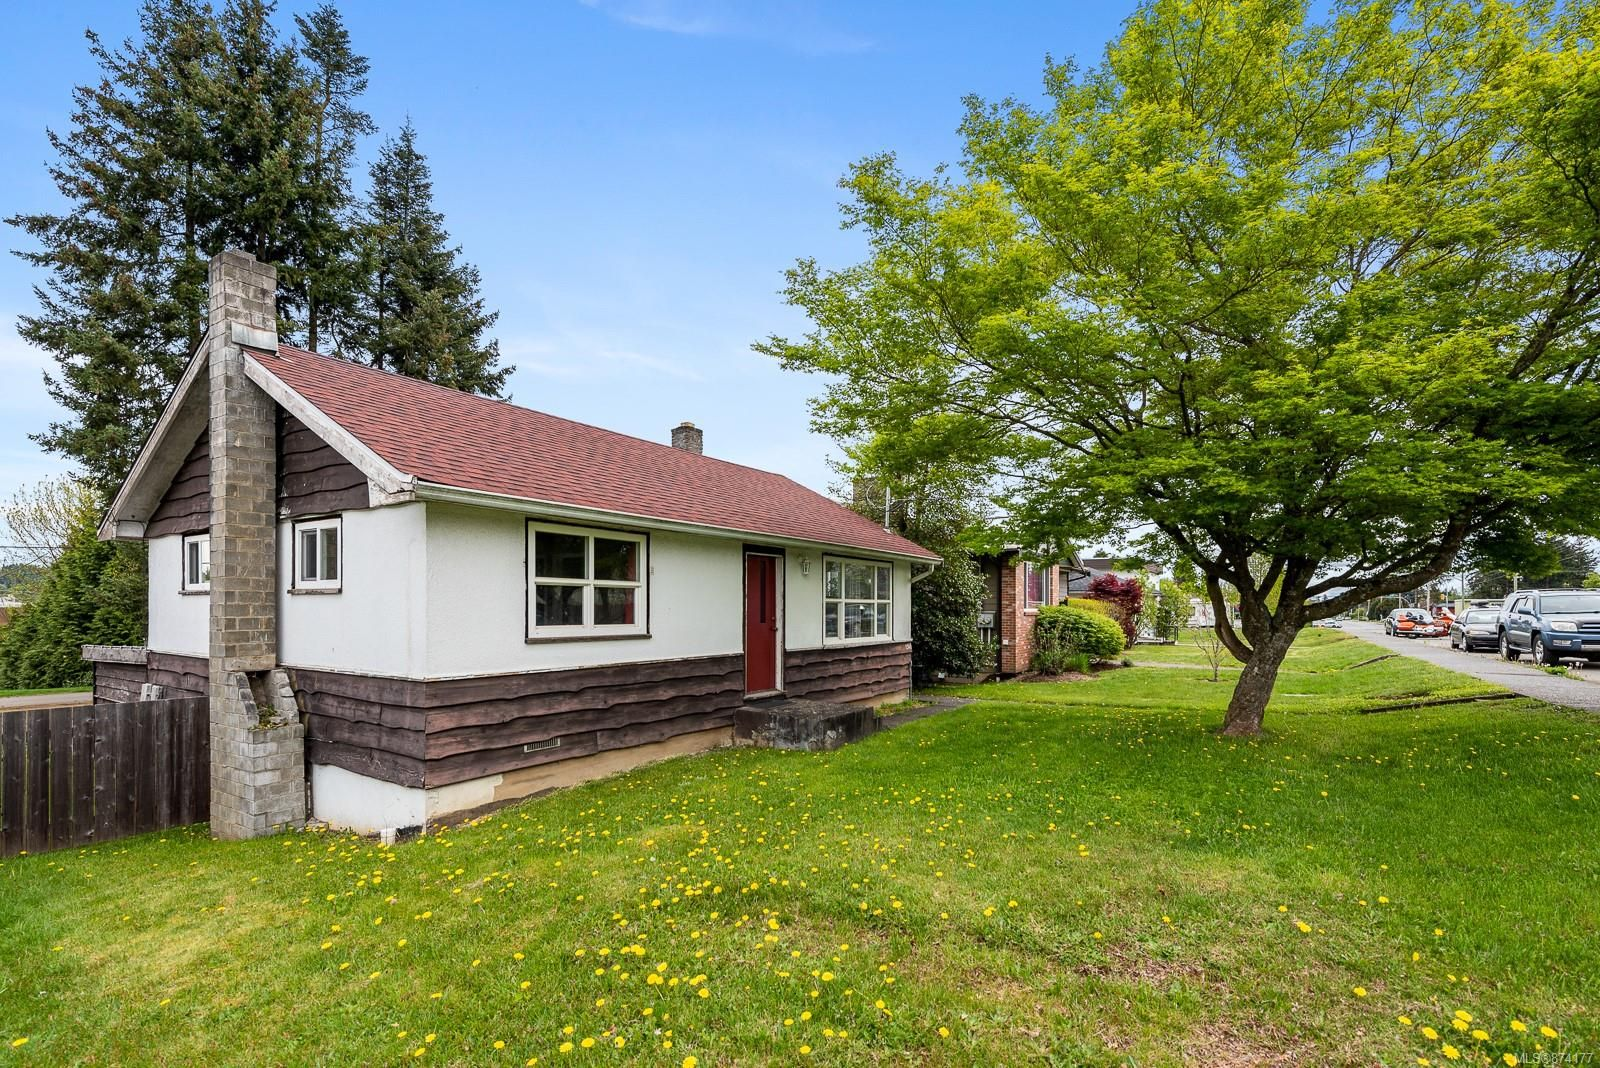 Main Photo: 1540 Fitzgerald Ave in : CV Courtenay City House for sale (Comox Valley)  : MLS®# 874177